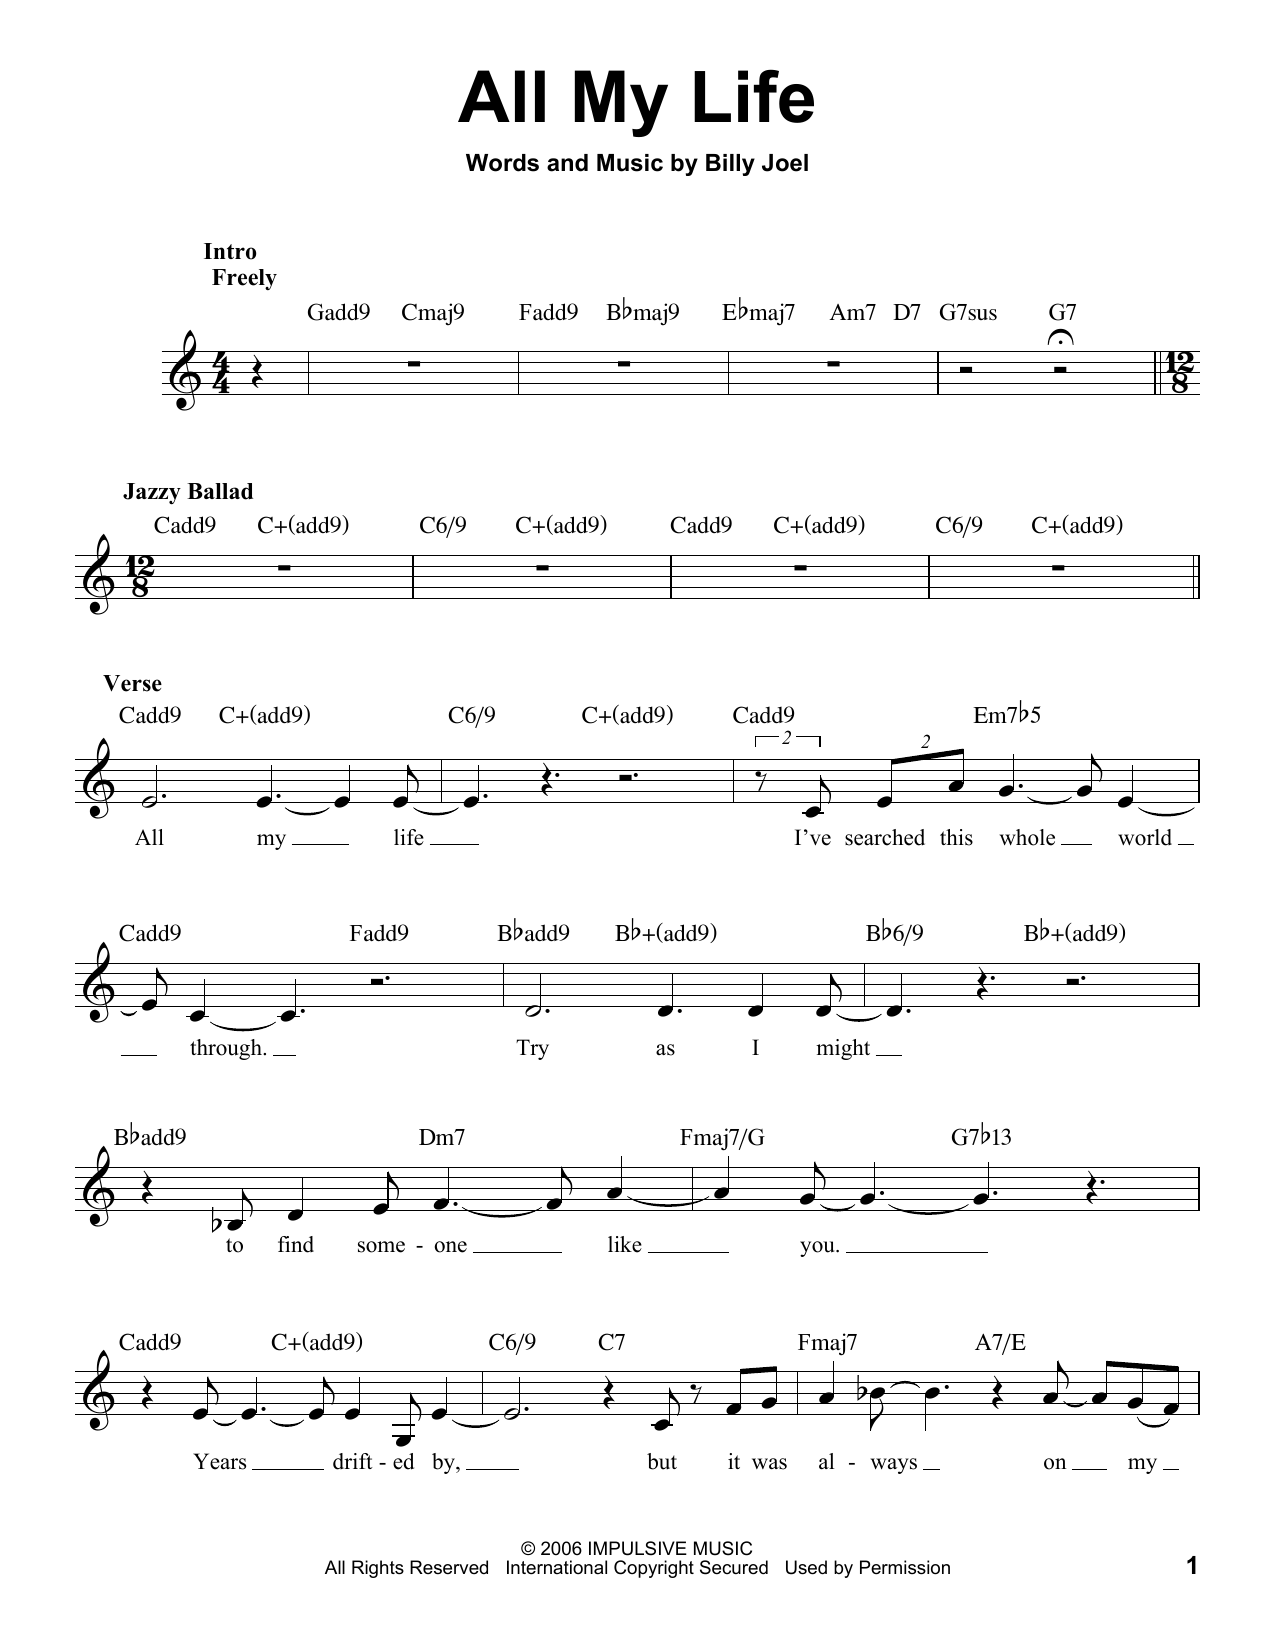 Billy Joel 'All My Life' Sheet Music Notes, Chords | Download Printable  Voice - SKU: 183051